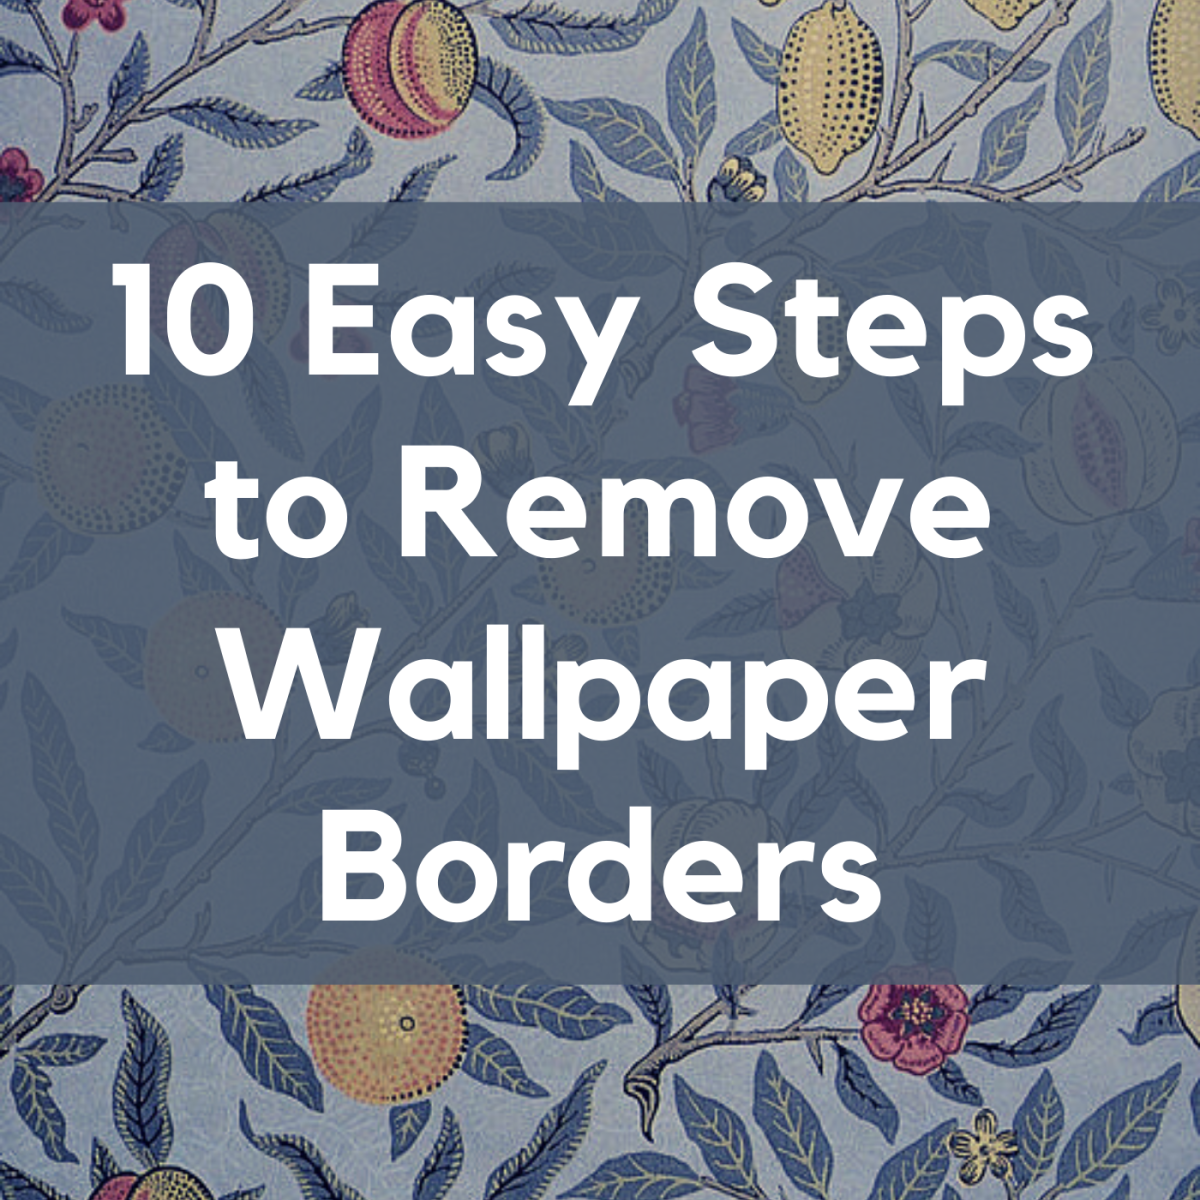 Does your house have outdated wallpaper borders? Learn how to remove them the easy way!